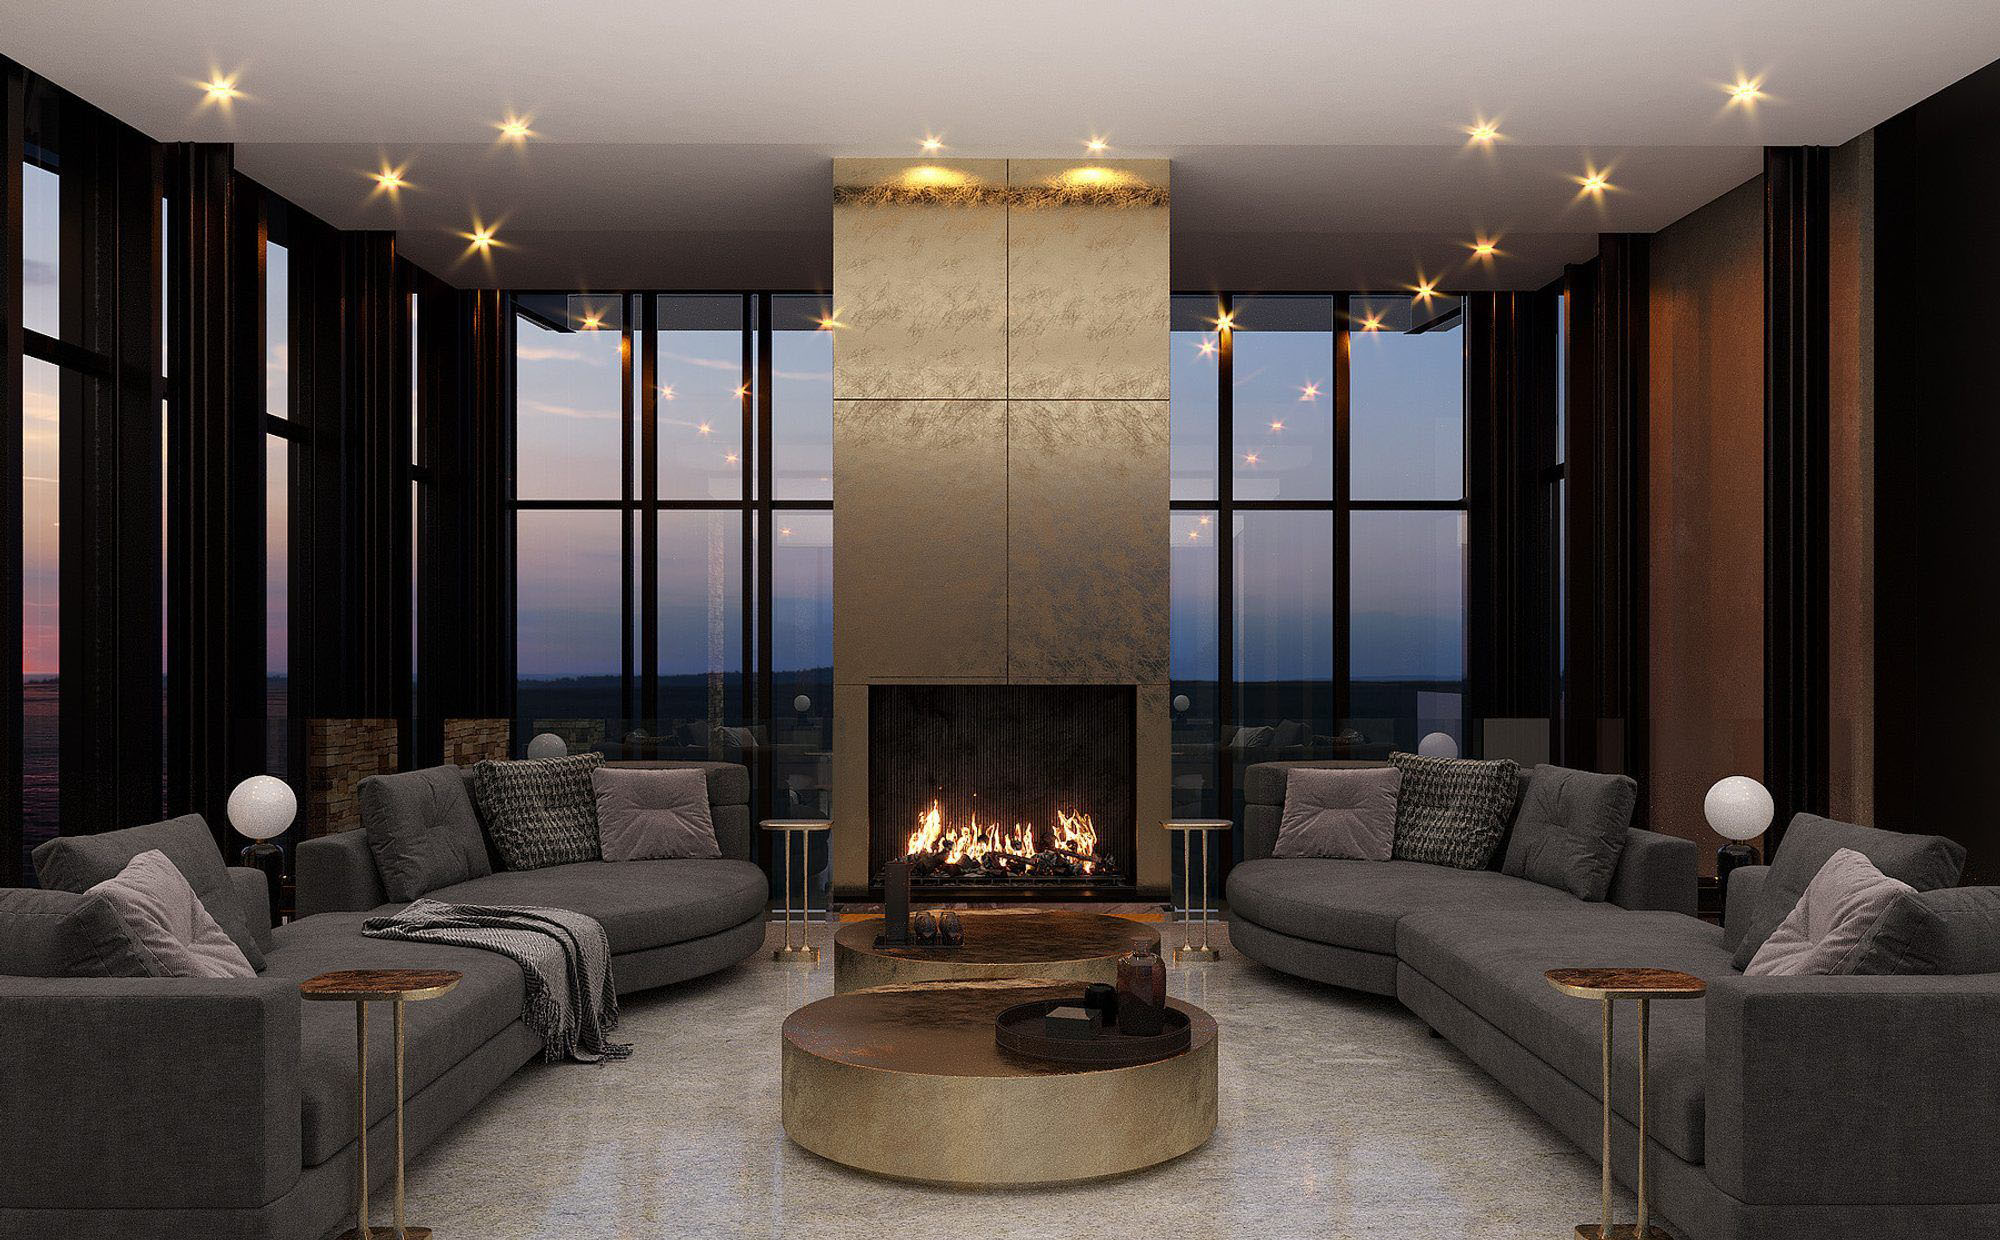 Modern wood burning fireplace with metallic gold grid surround. fireplace design ideas.